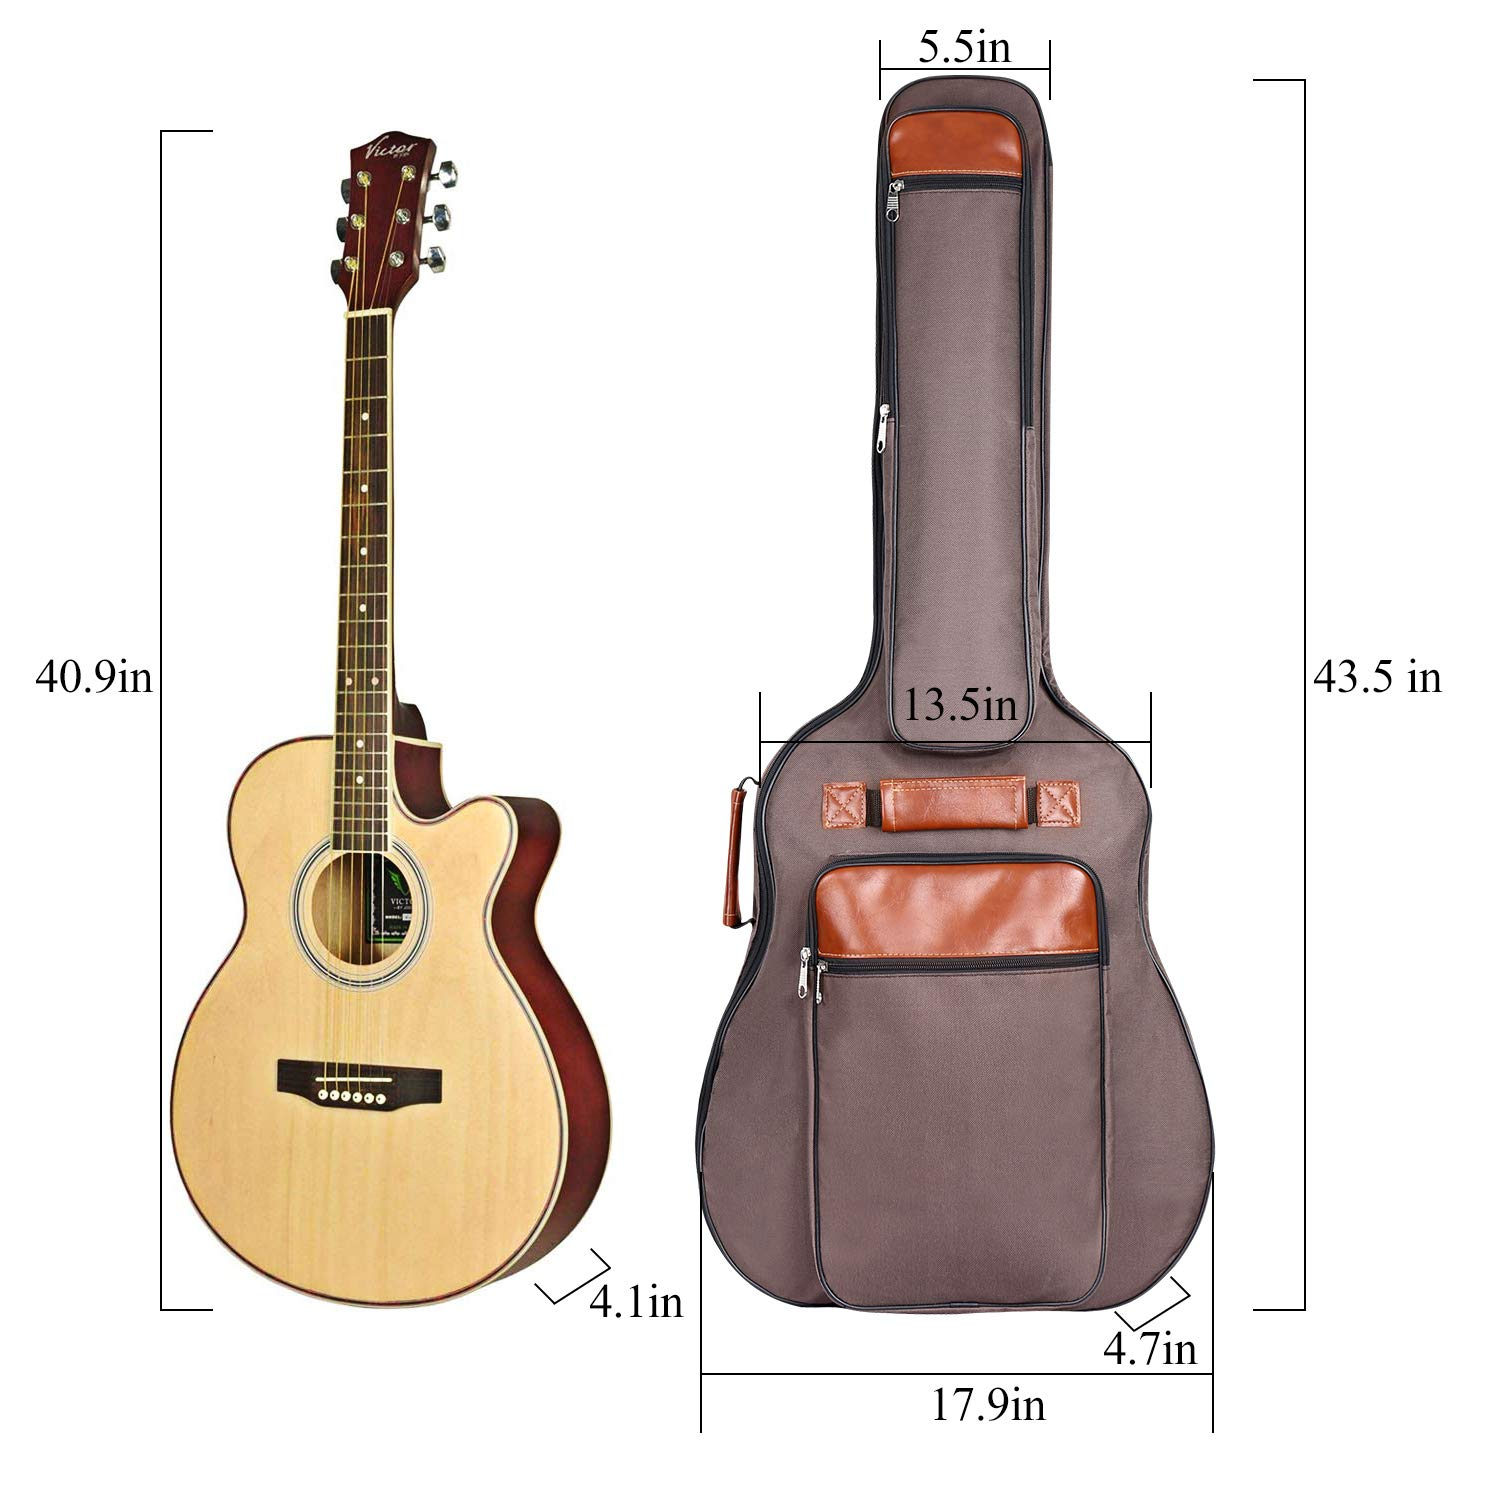 CAHAYA Guitar Bag 40 41 42 Inches 6 Pockets [Upgraded Premium Version] Guitar Case Waterproof Oxford Cloth 0.5 Inch Extra Thick Sponge Overly Padded with 5 Picks & Holder for Acoustic Classical Guitar by CAHAYA (Image #8)